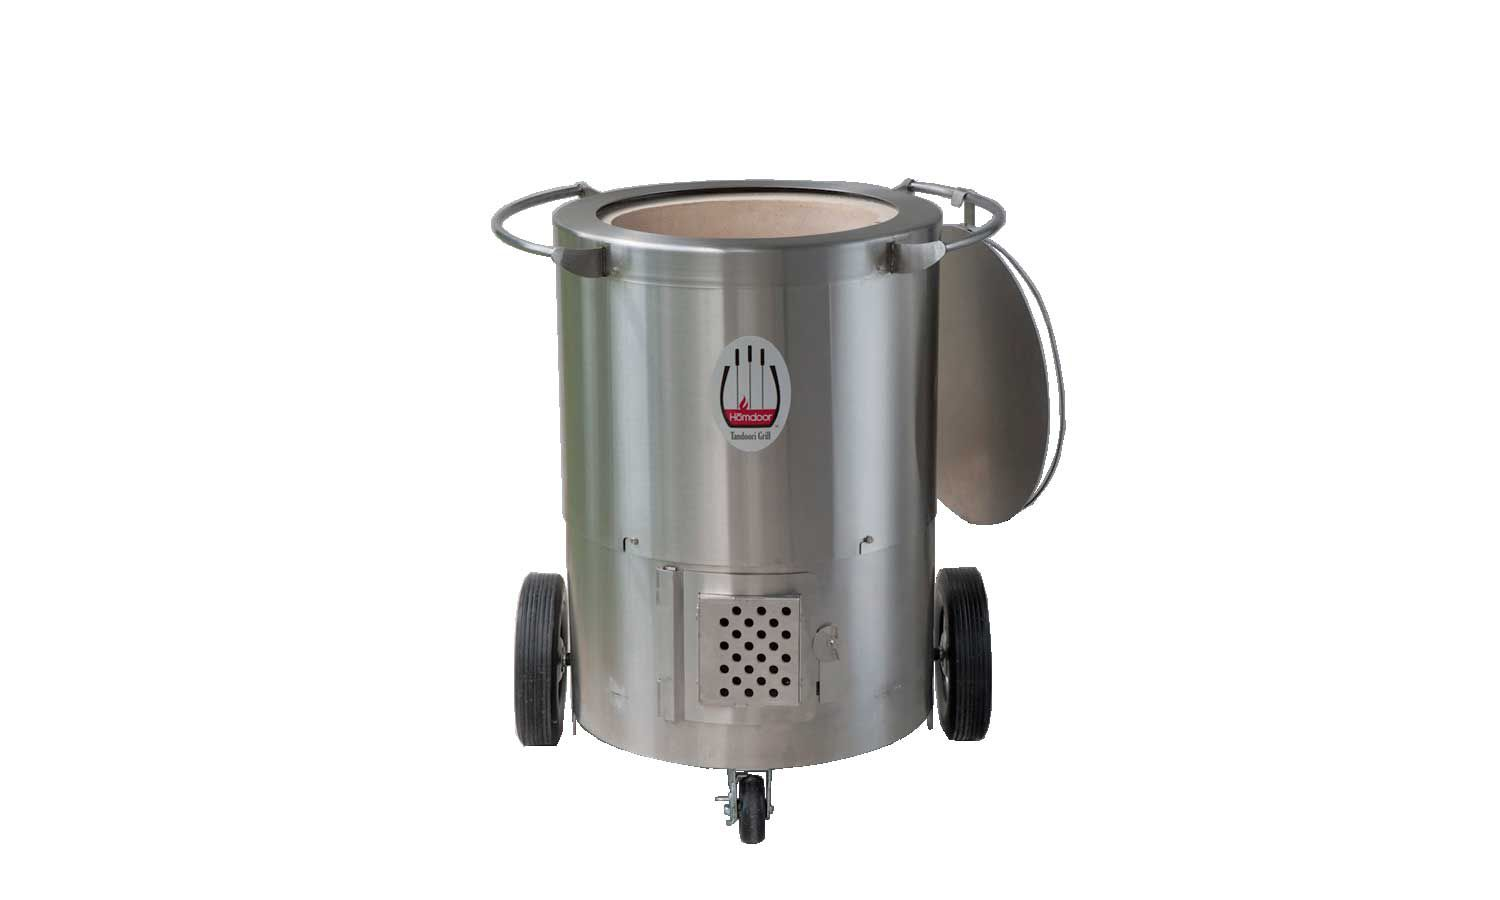 The Homdoor Charcoal Tandoor, a home tandoor-style oven with a stainless steel shell